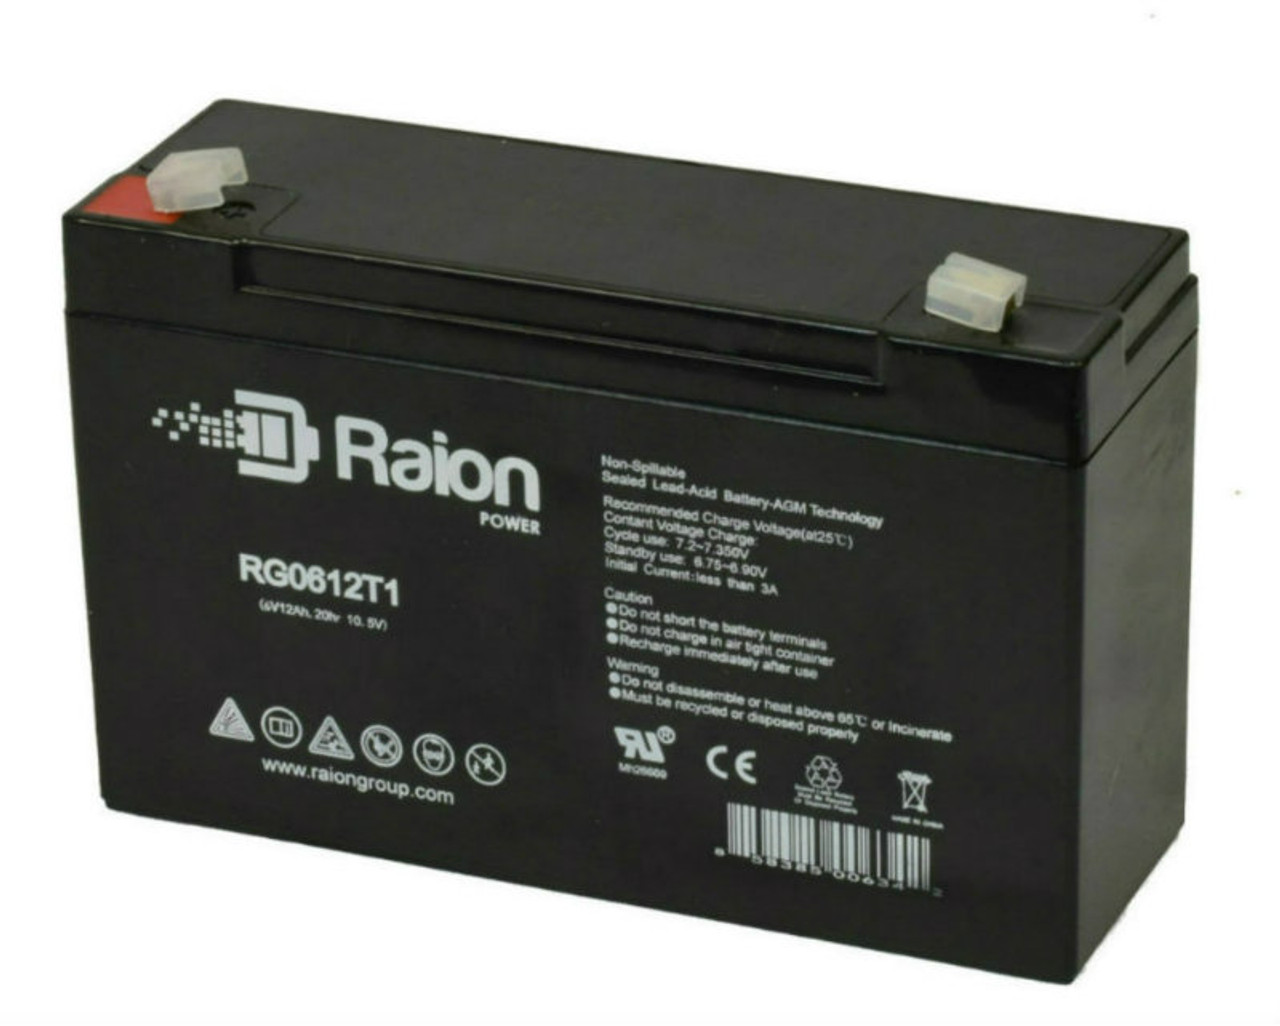 Raion Power RG06120T1 Replacement Battery Pack for Mule LCS650E2 emergency light